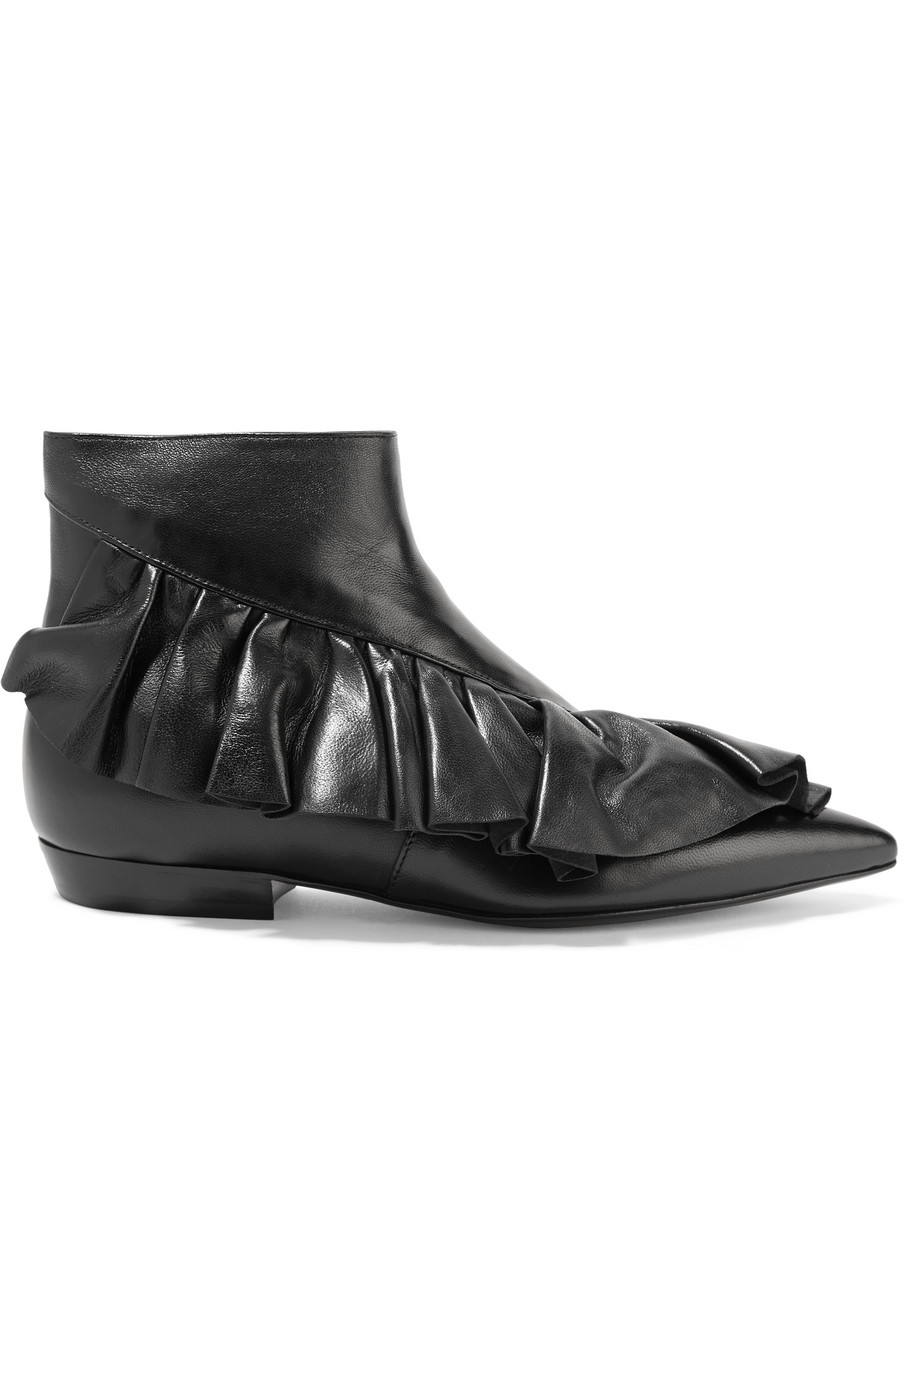 J.W.Anderson Ruffled Leather Ankle Boots, Black, Women's US Size: 9.5, Size: 40